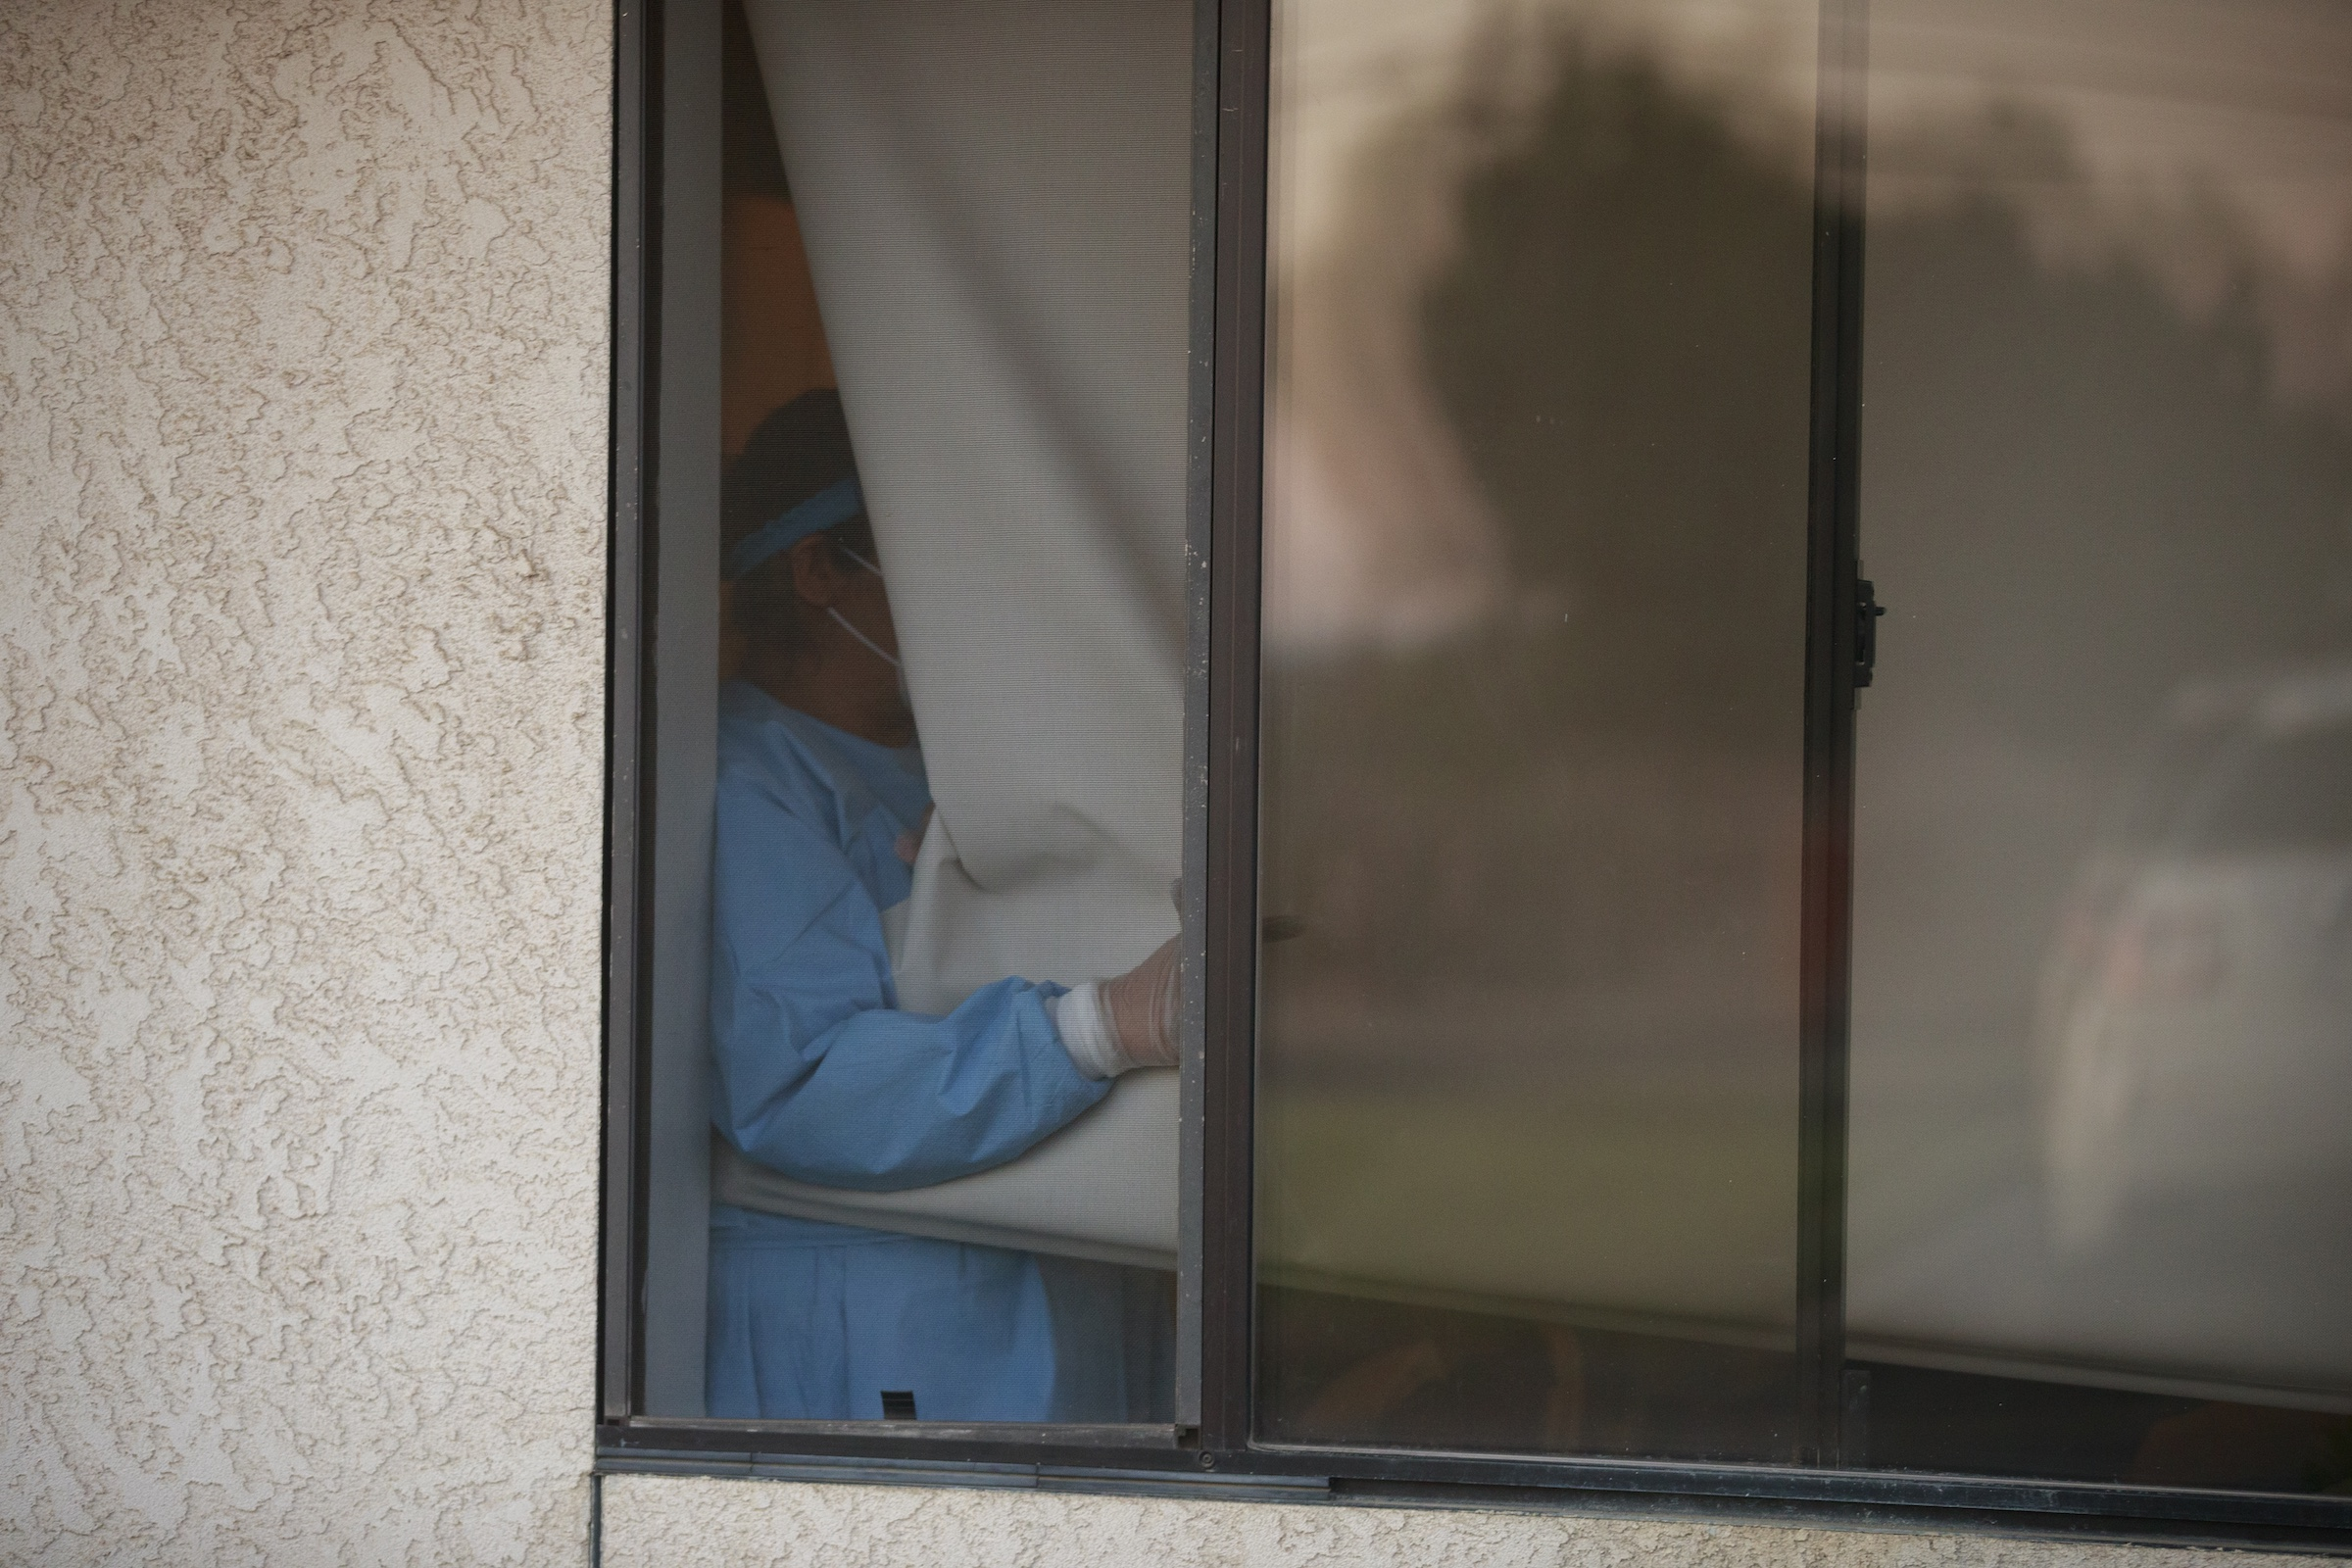 Most nursing home workers in New poll says, life is in danger 'every day from Crown